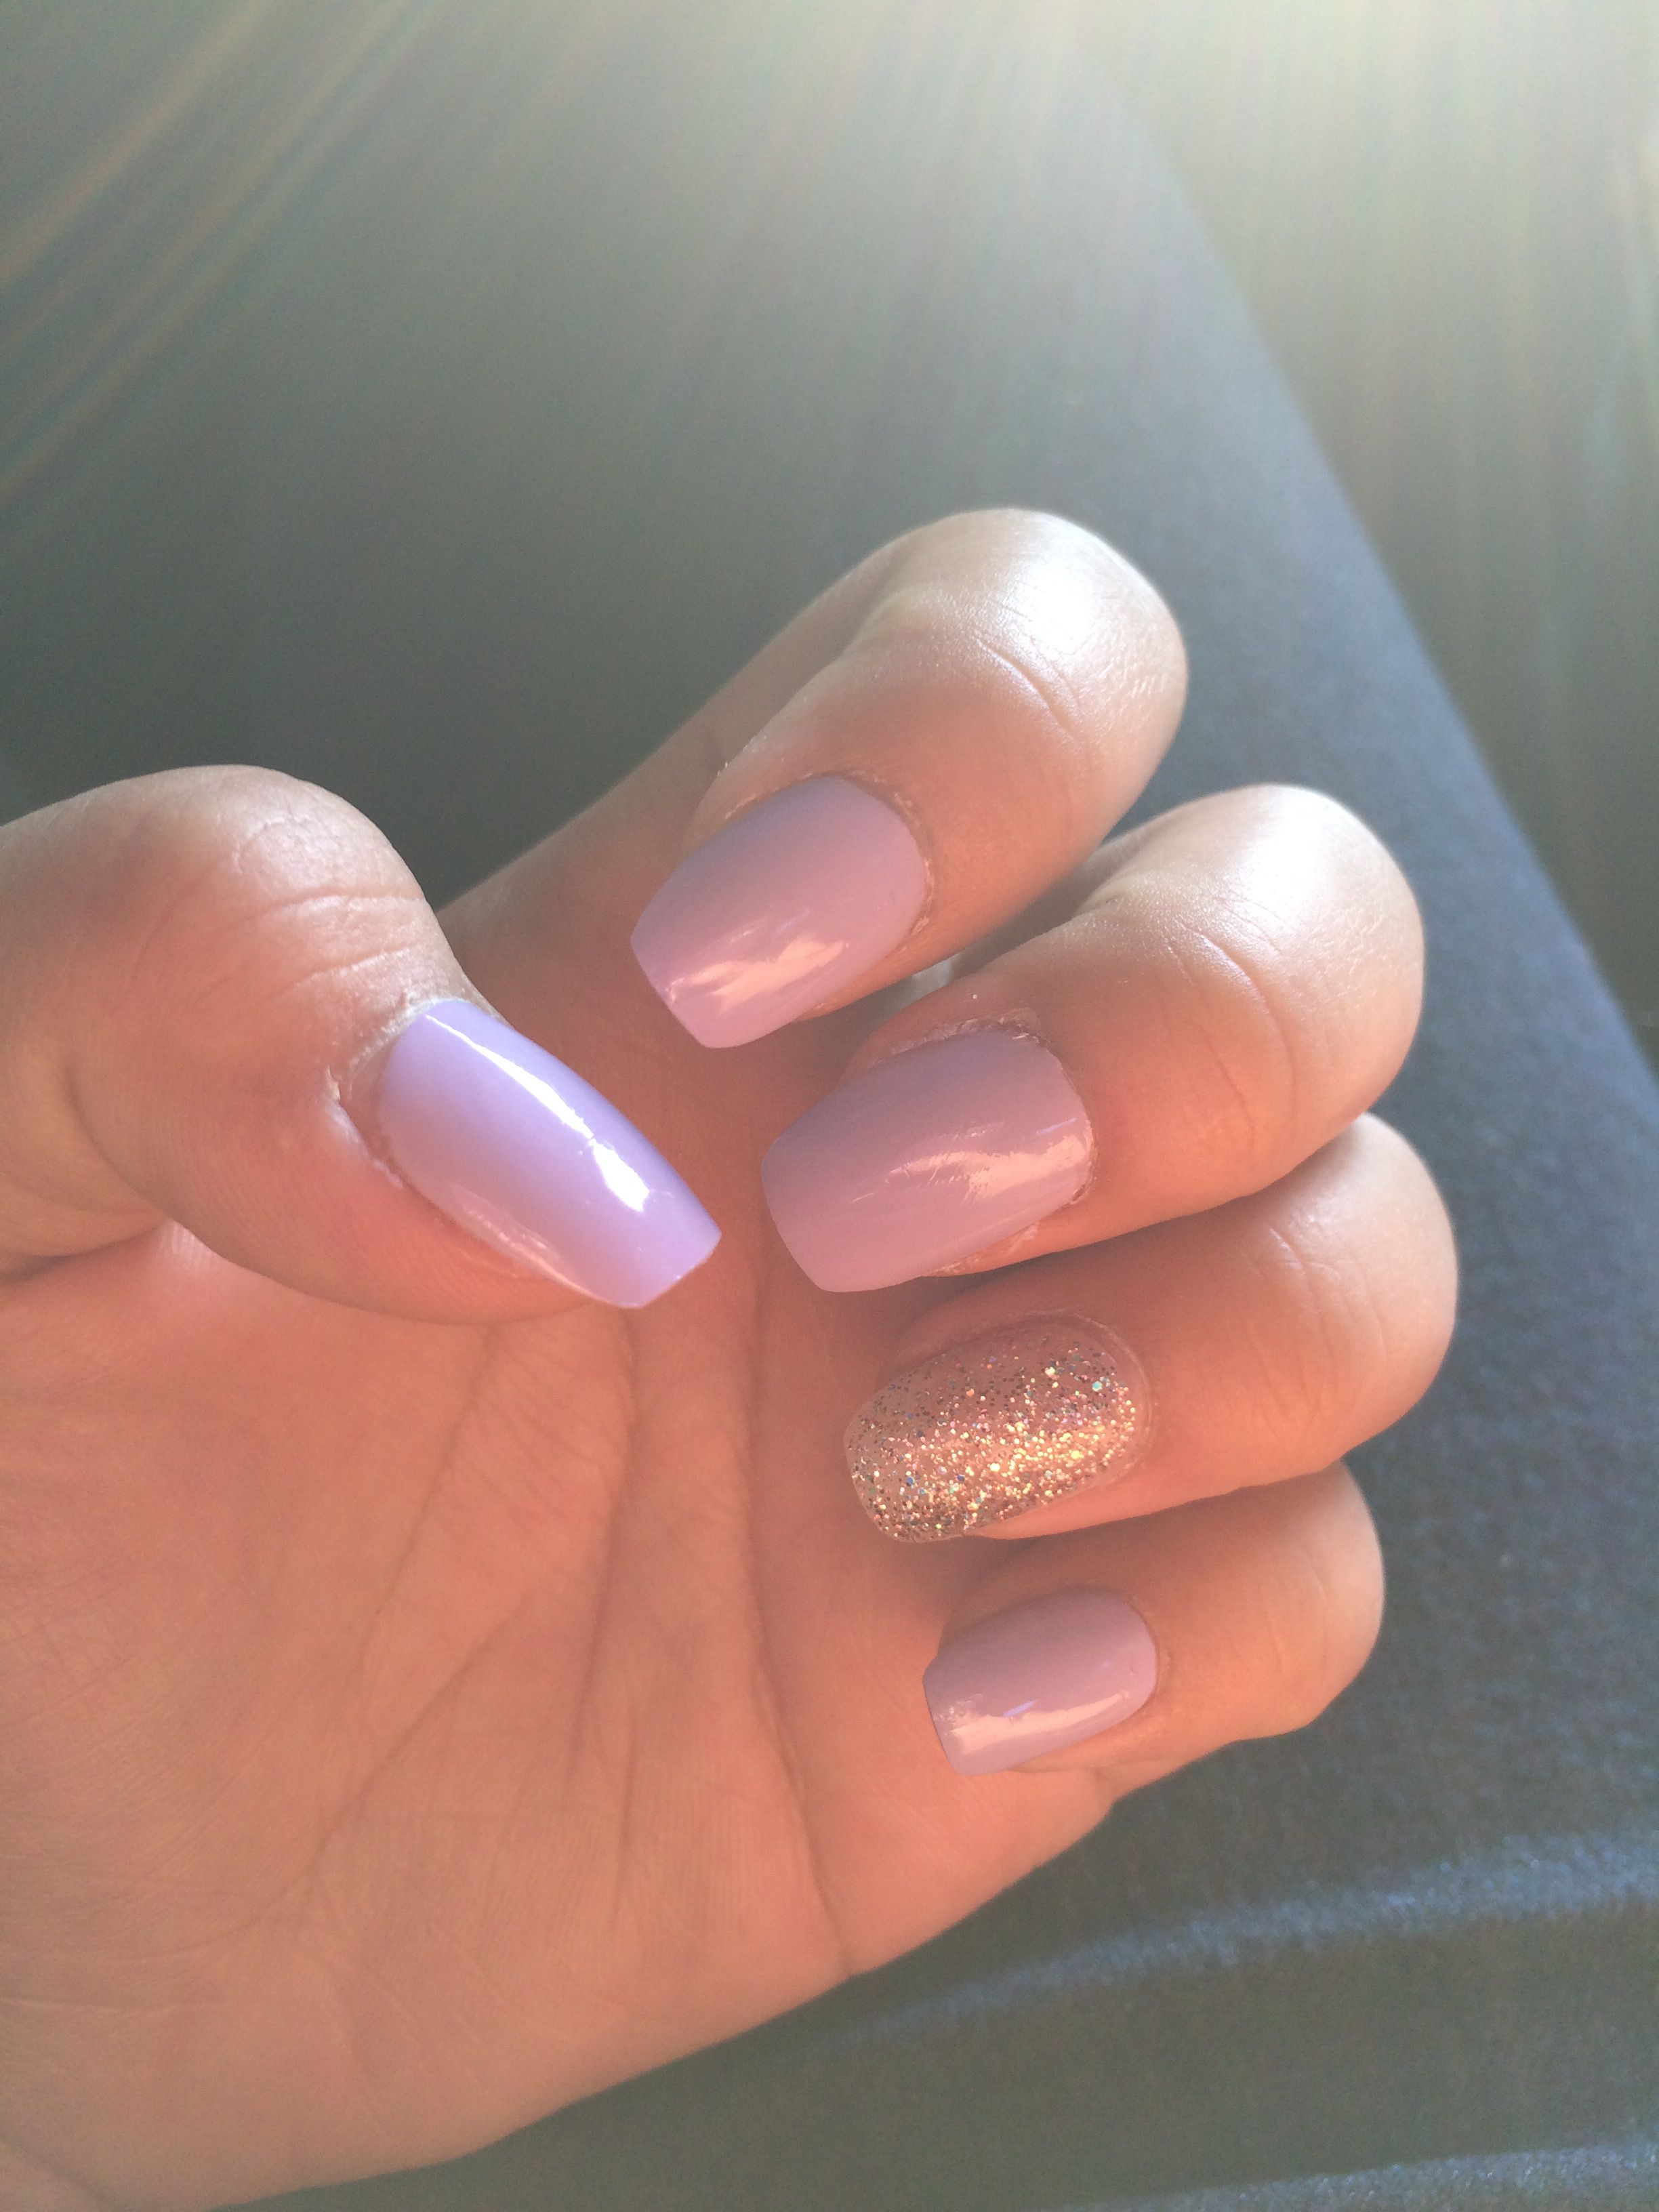 Easy Kiss Salon nail tips, glued, & filed. Before putting on the ...